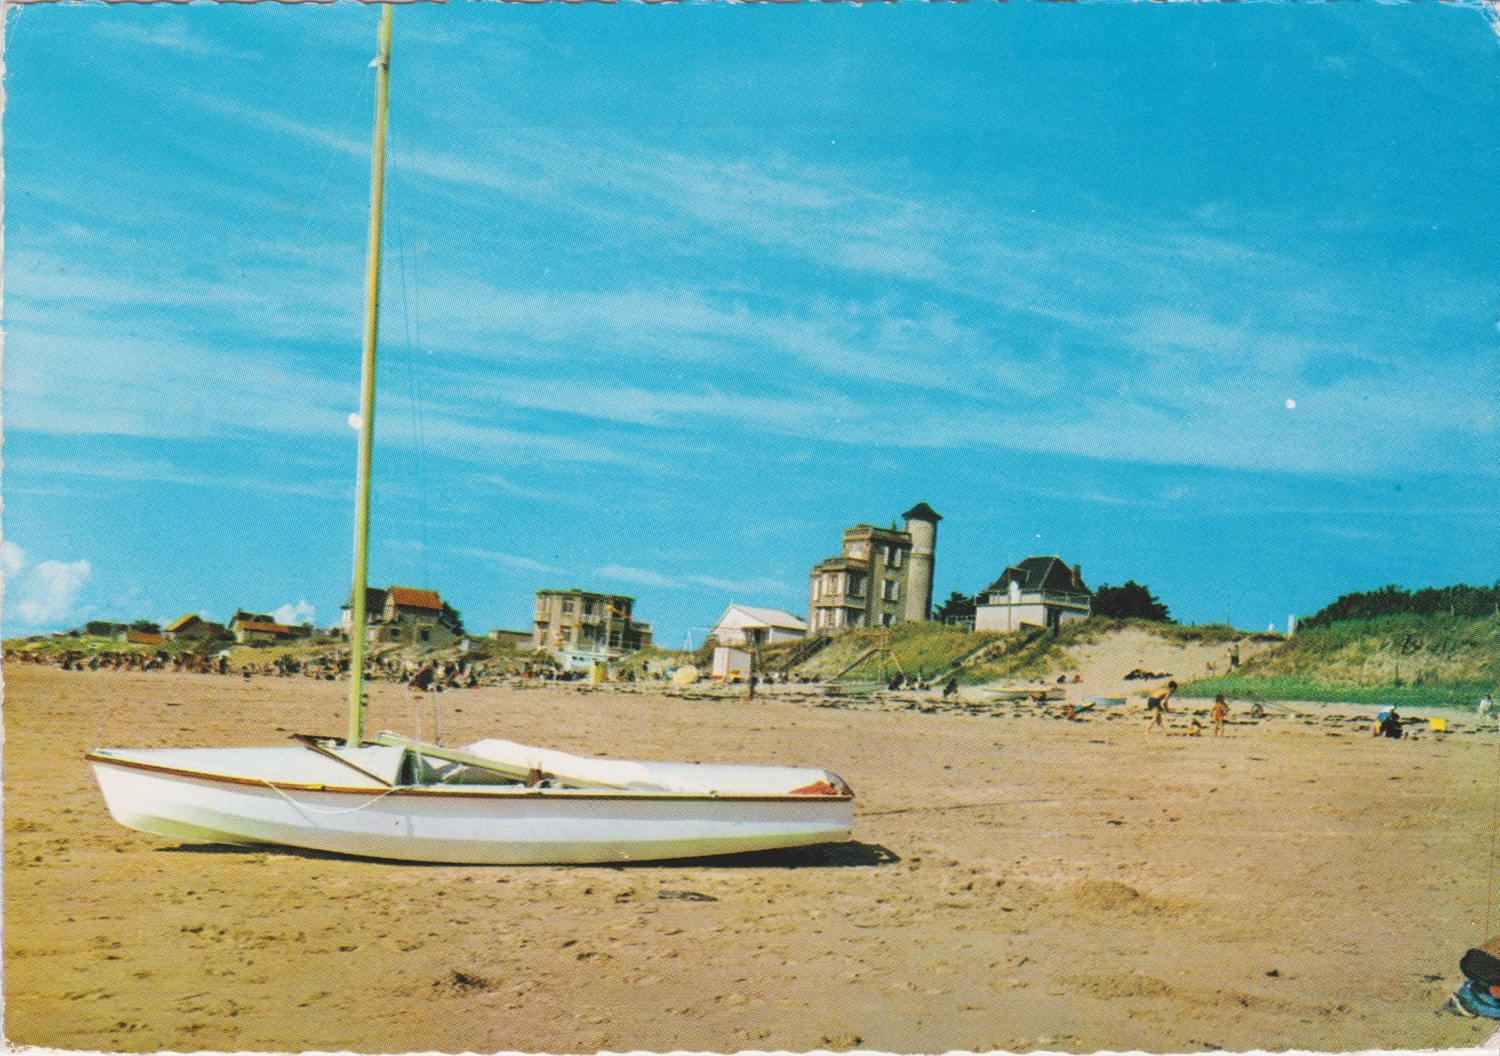 1966 St Martin Plage © collection Jean Claude Ferret